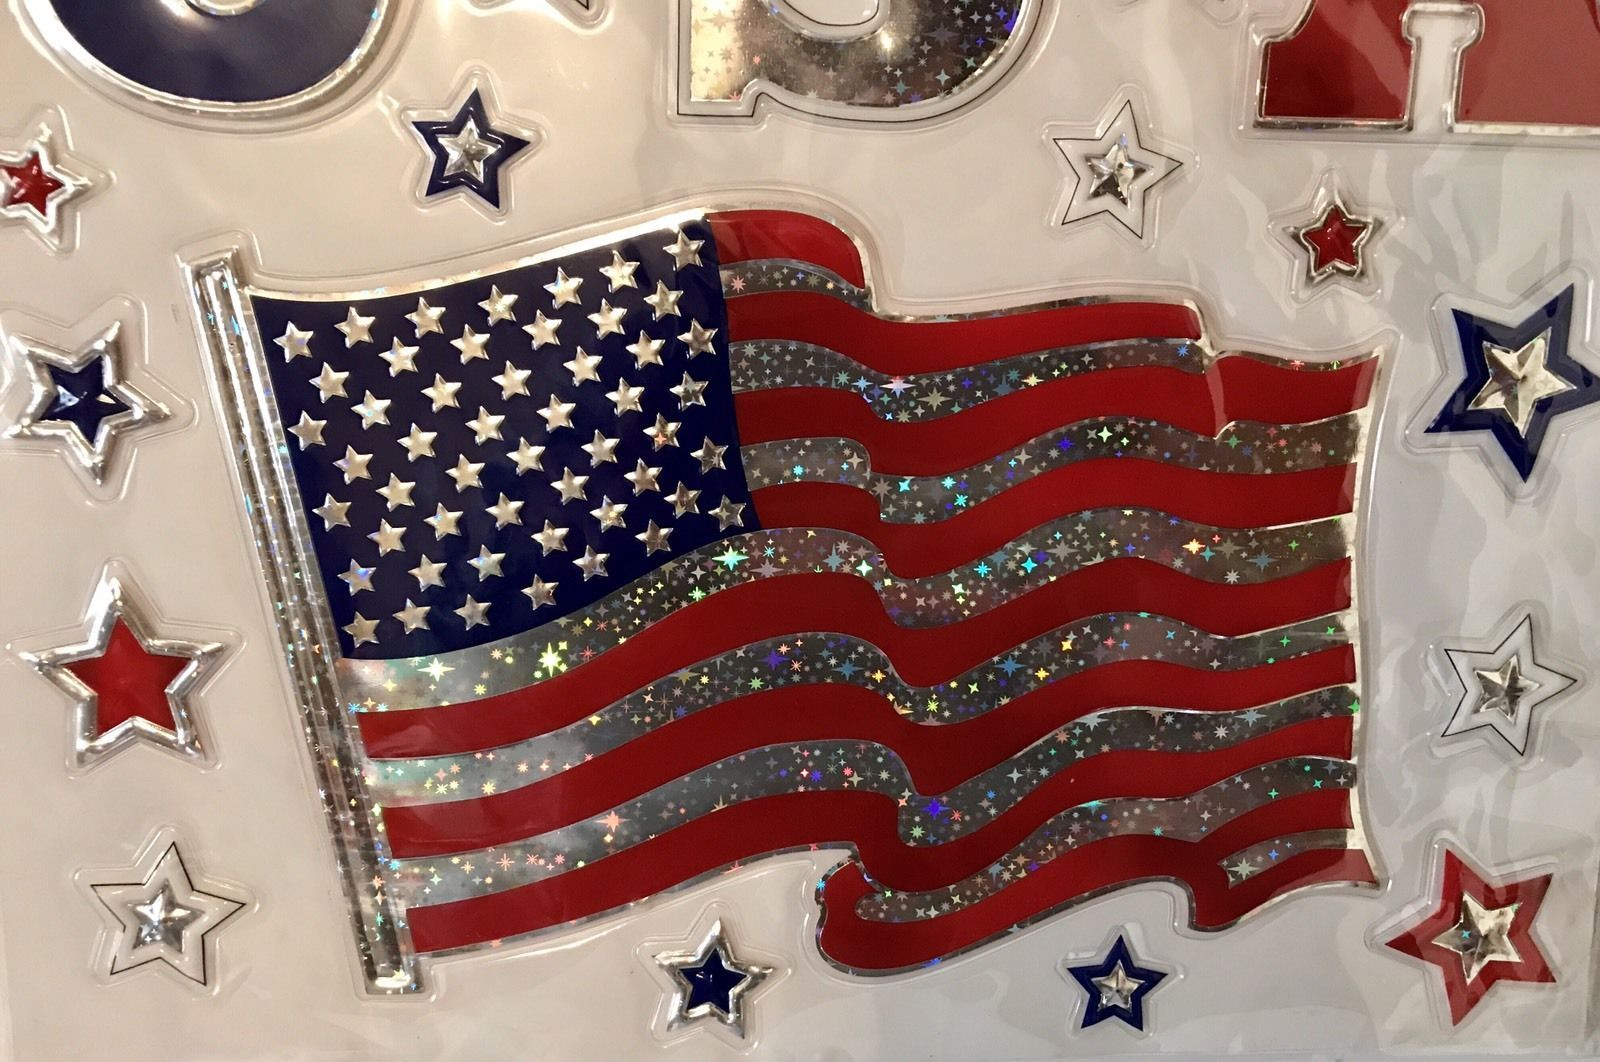 Bling Clings USA FLAG & STARS Patriotic American Glitter Window Decorations NEW